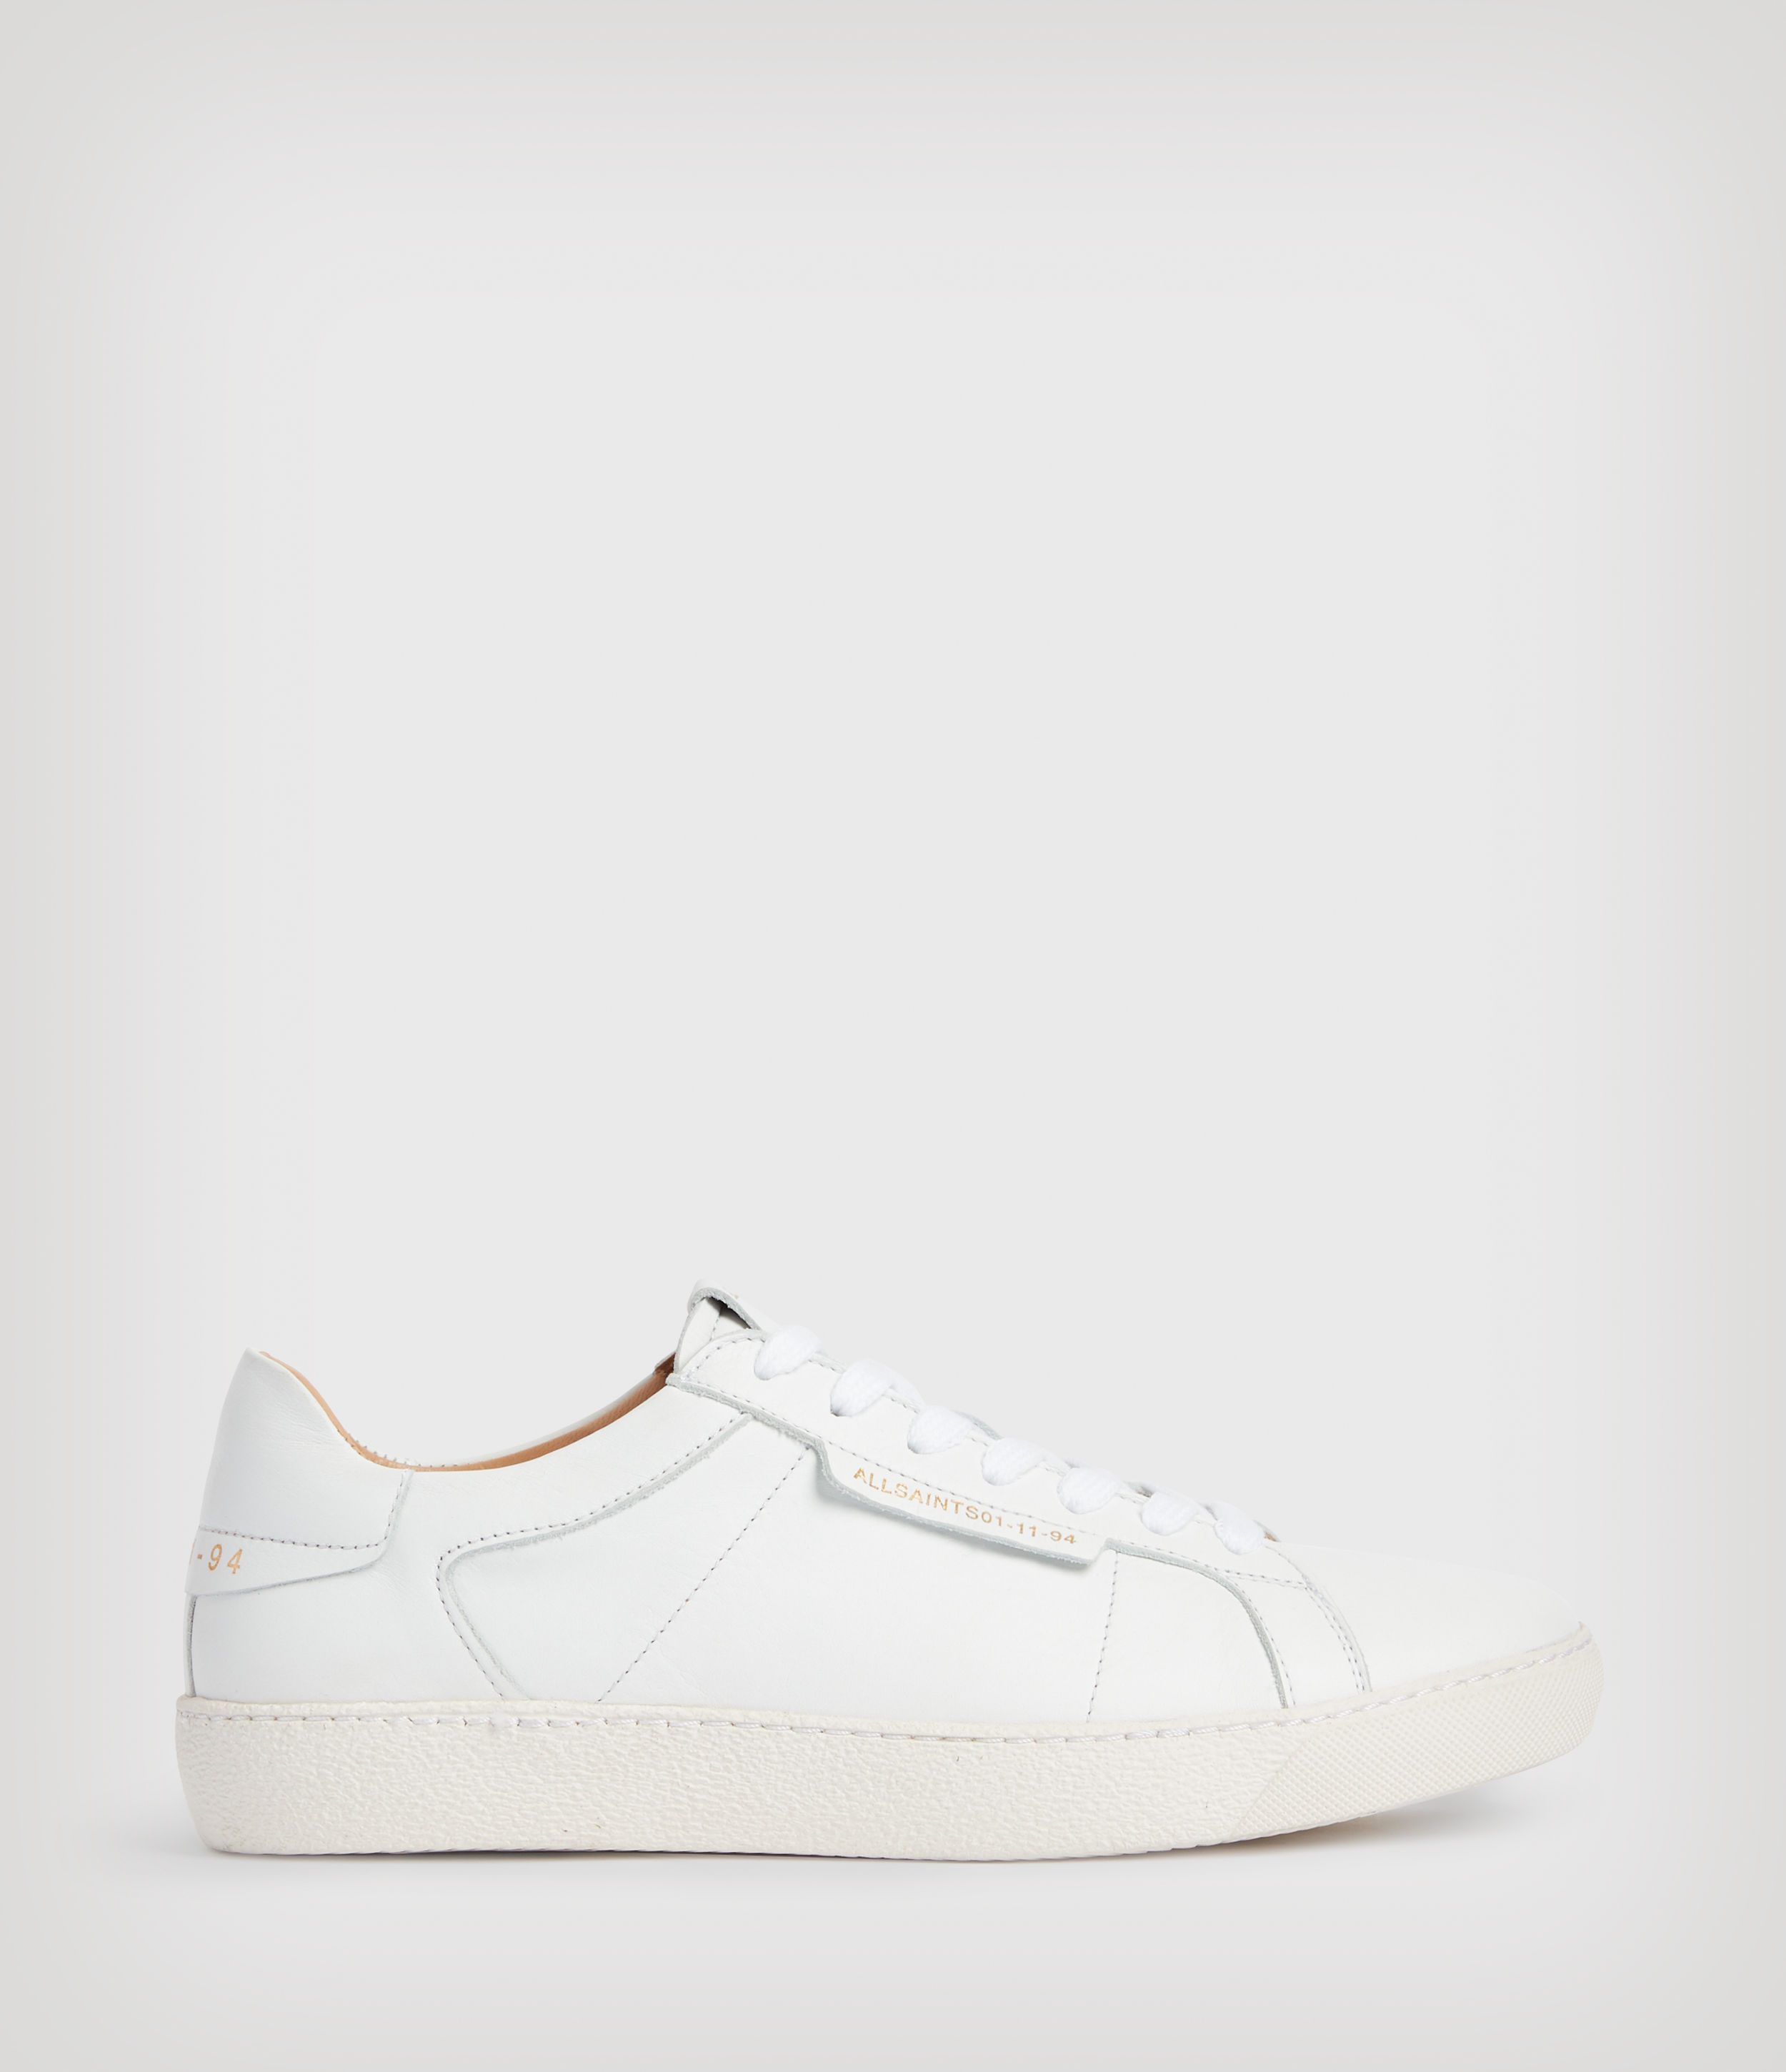 AllSaints Womens Sheer Leather Trainers, White, Size: UK 6/US 8/EU 39